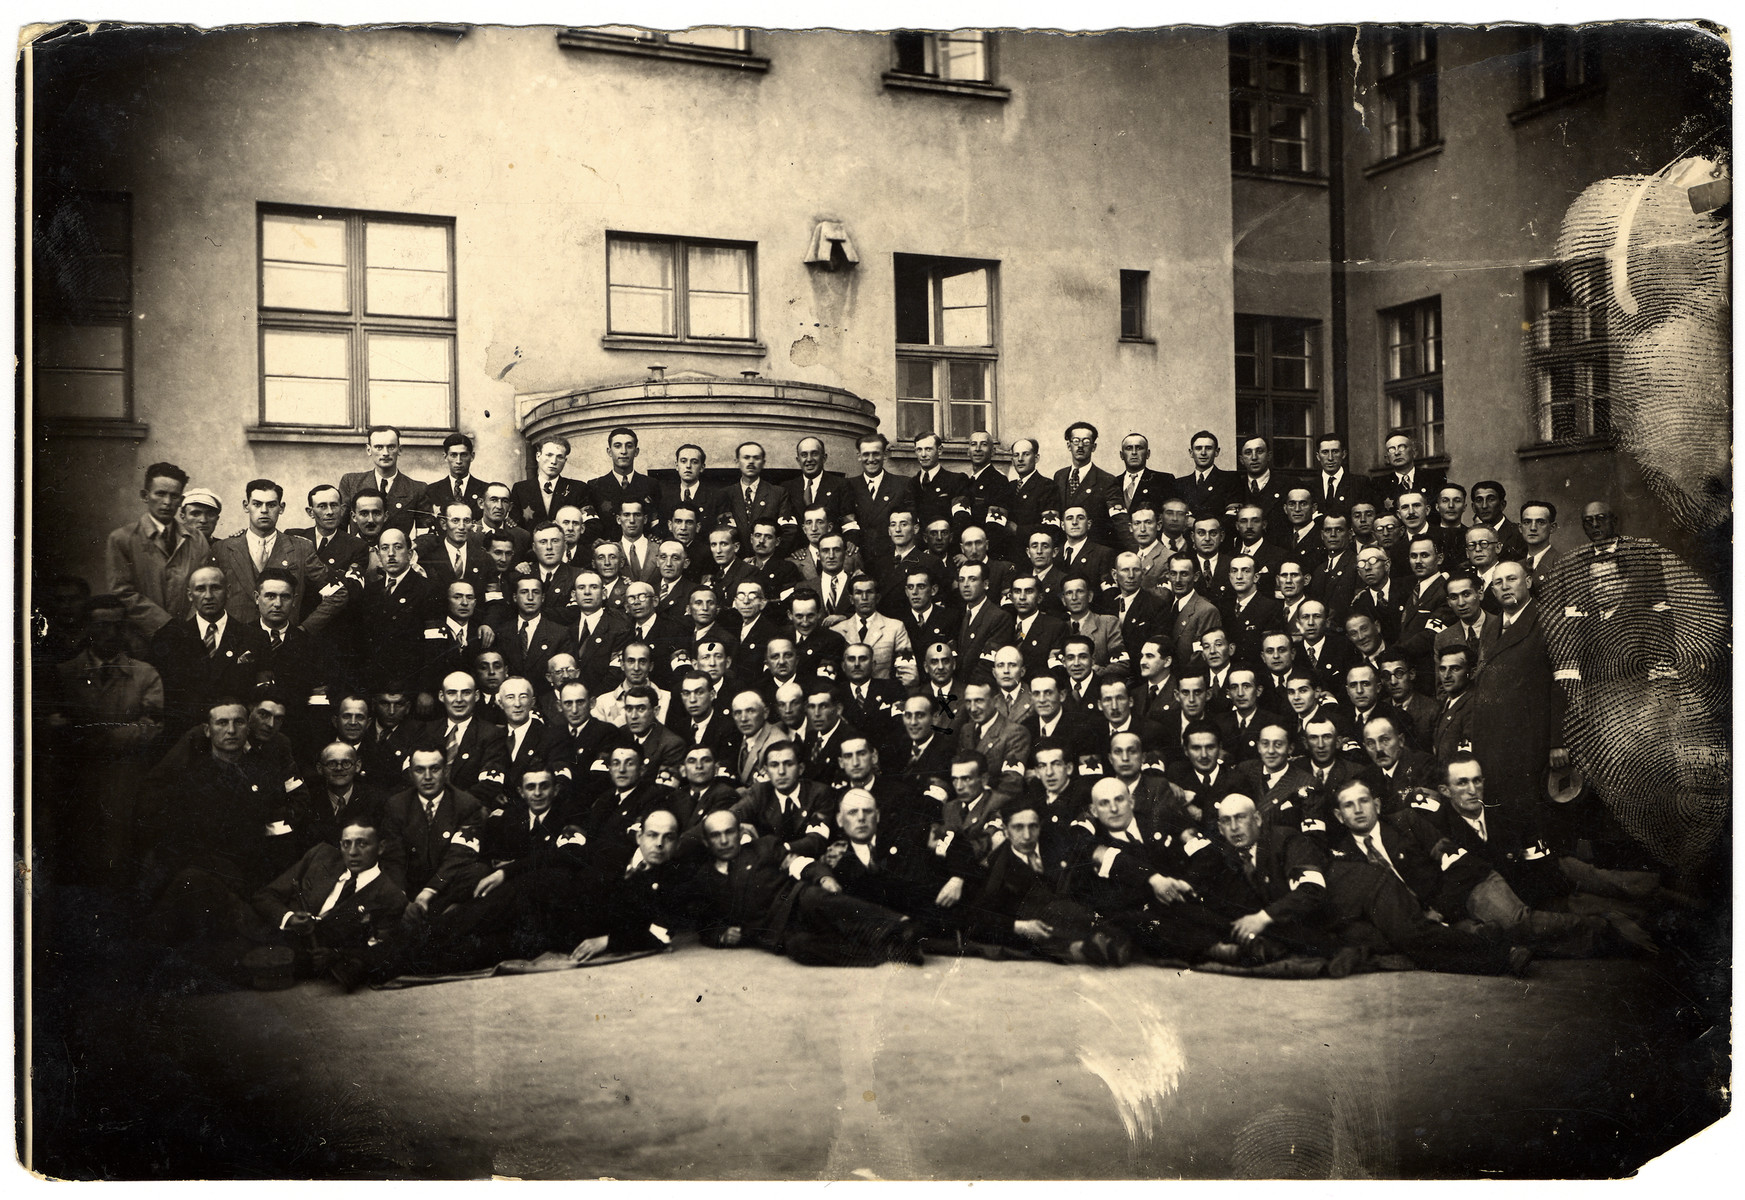 Large group portrait of members of the Lodz ghetto Jewish police.   Among those pictured, in the fourth row from the bottom, are Julek Grosbart (second from the left), Zygmunt Reingold, the commander of the police department (fourth from the left) and Leon Rozenblat, the head of the ghetto police (seventh from the left). Abram Josef (Alfred) Chimowicz is standing in the first row of standing policeman, on the very far right,